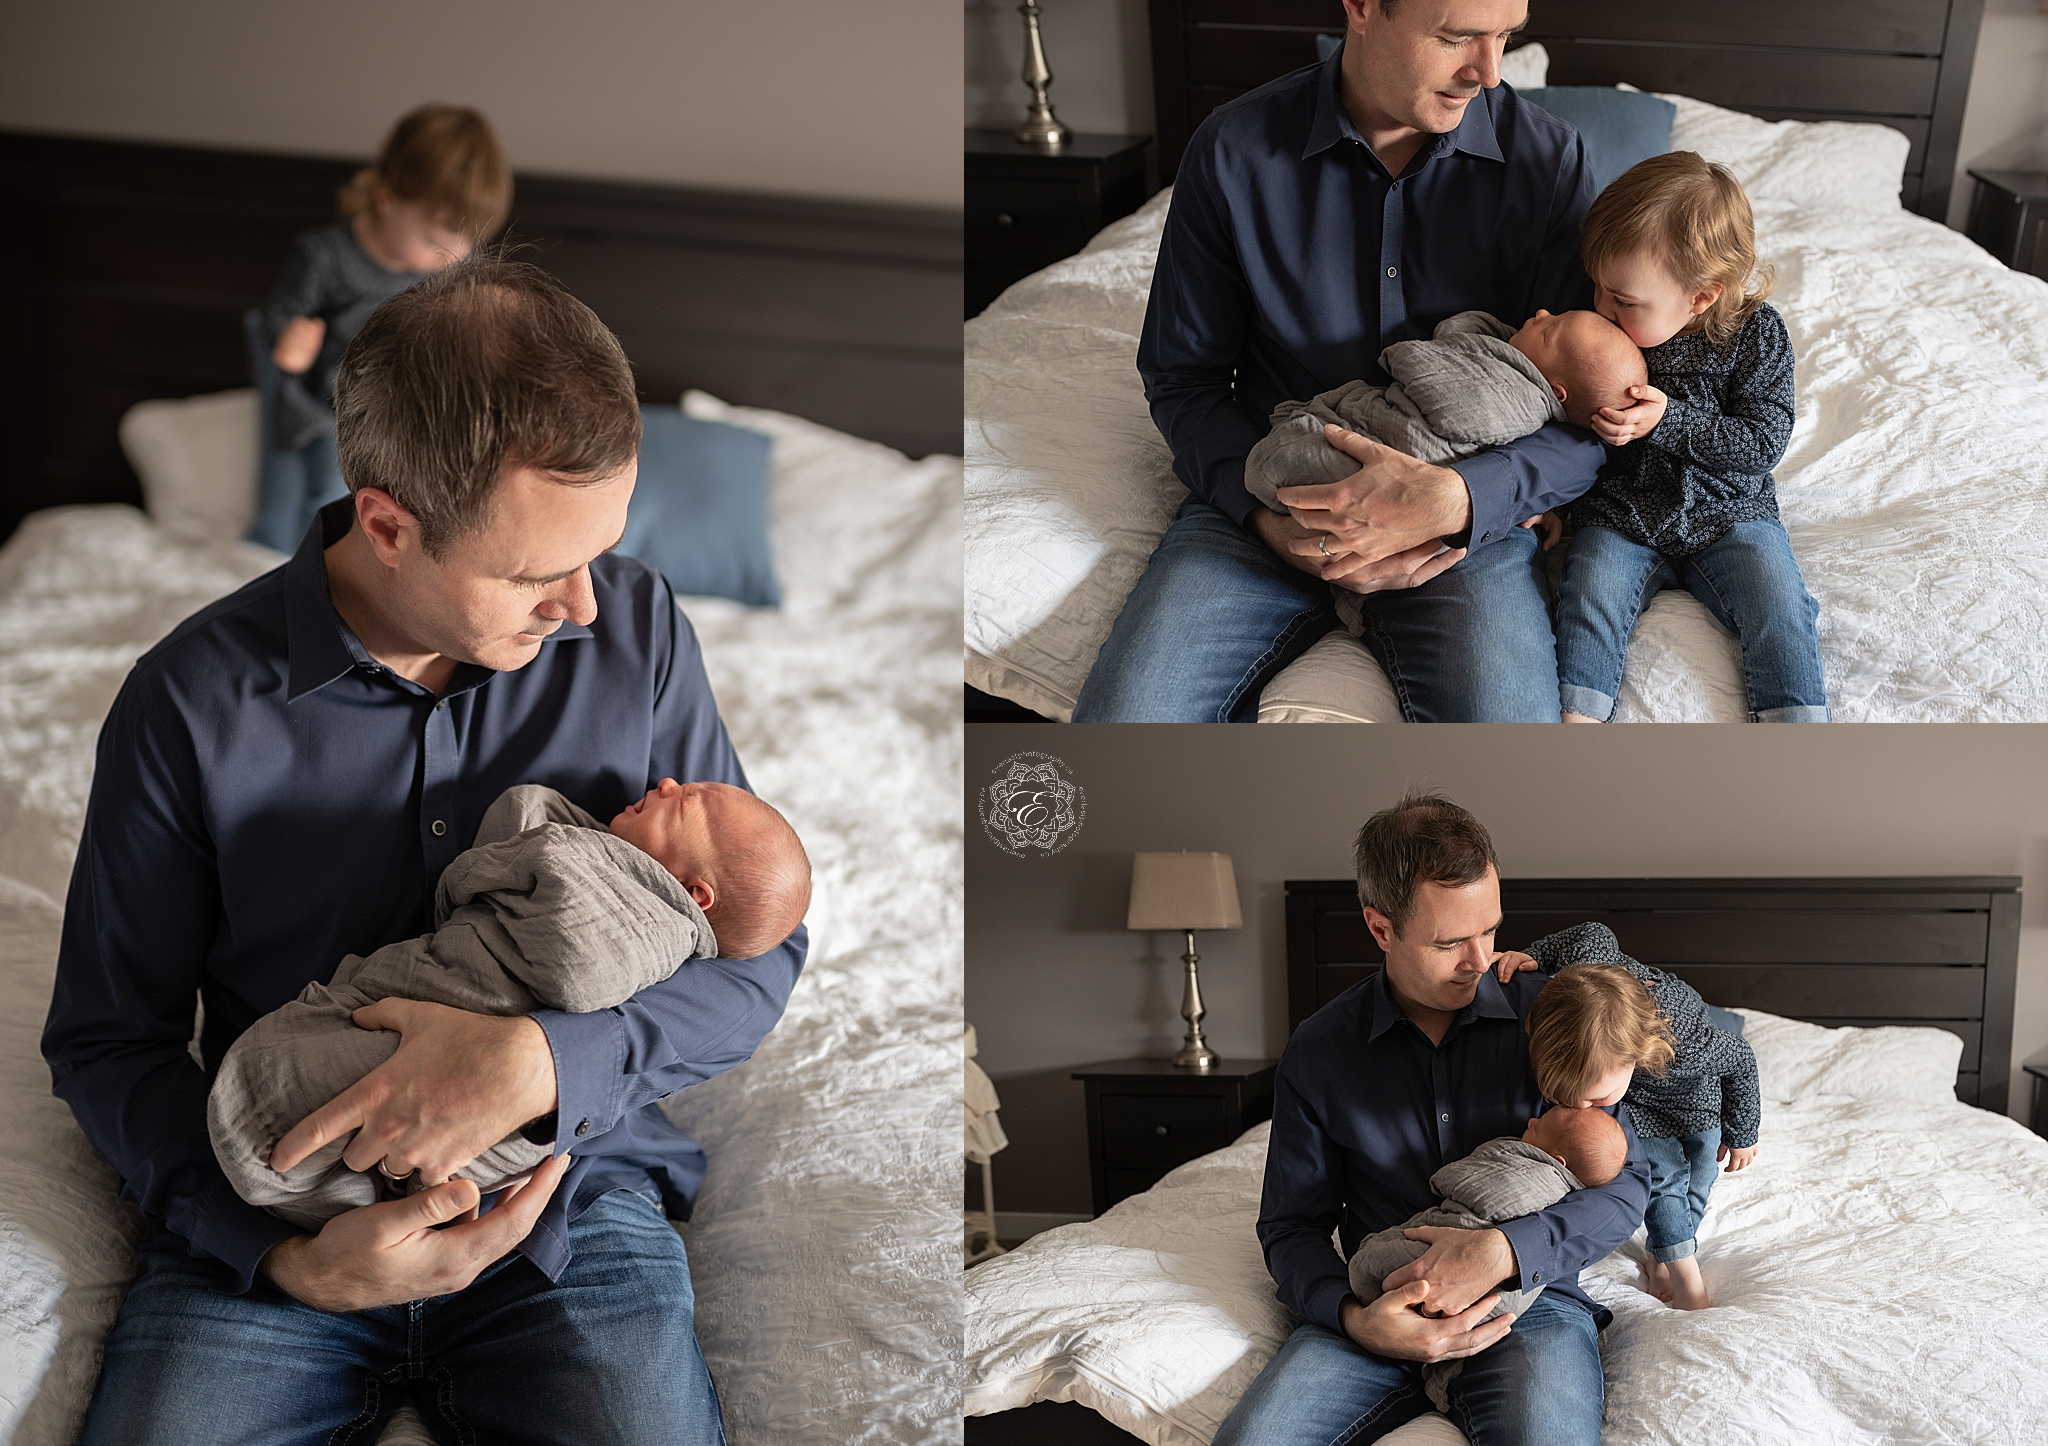 edmonton-best-newborn-lifestyle-photographer.jpg